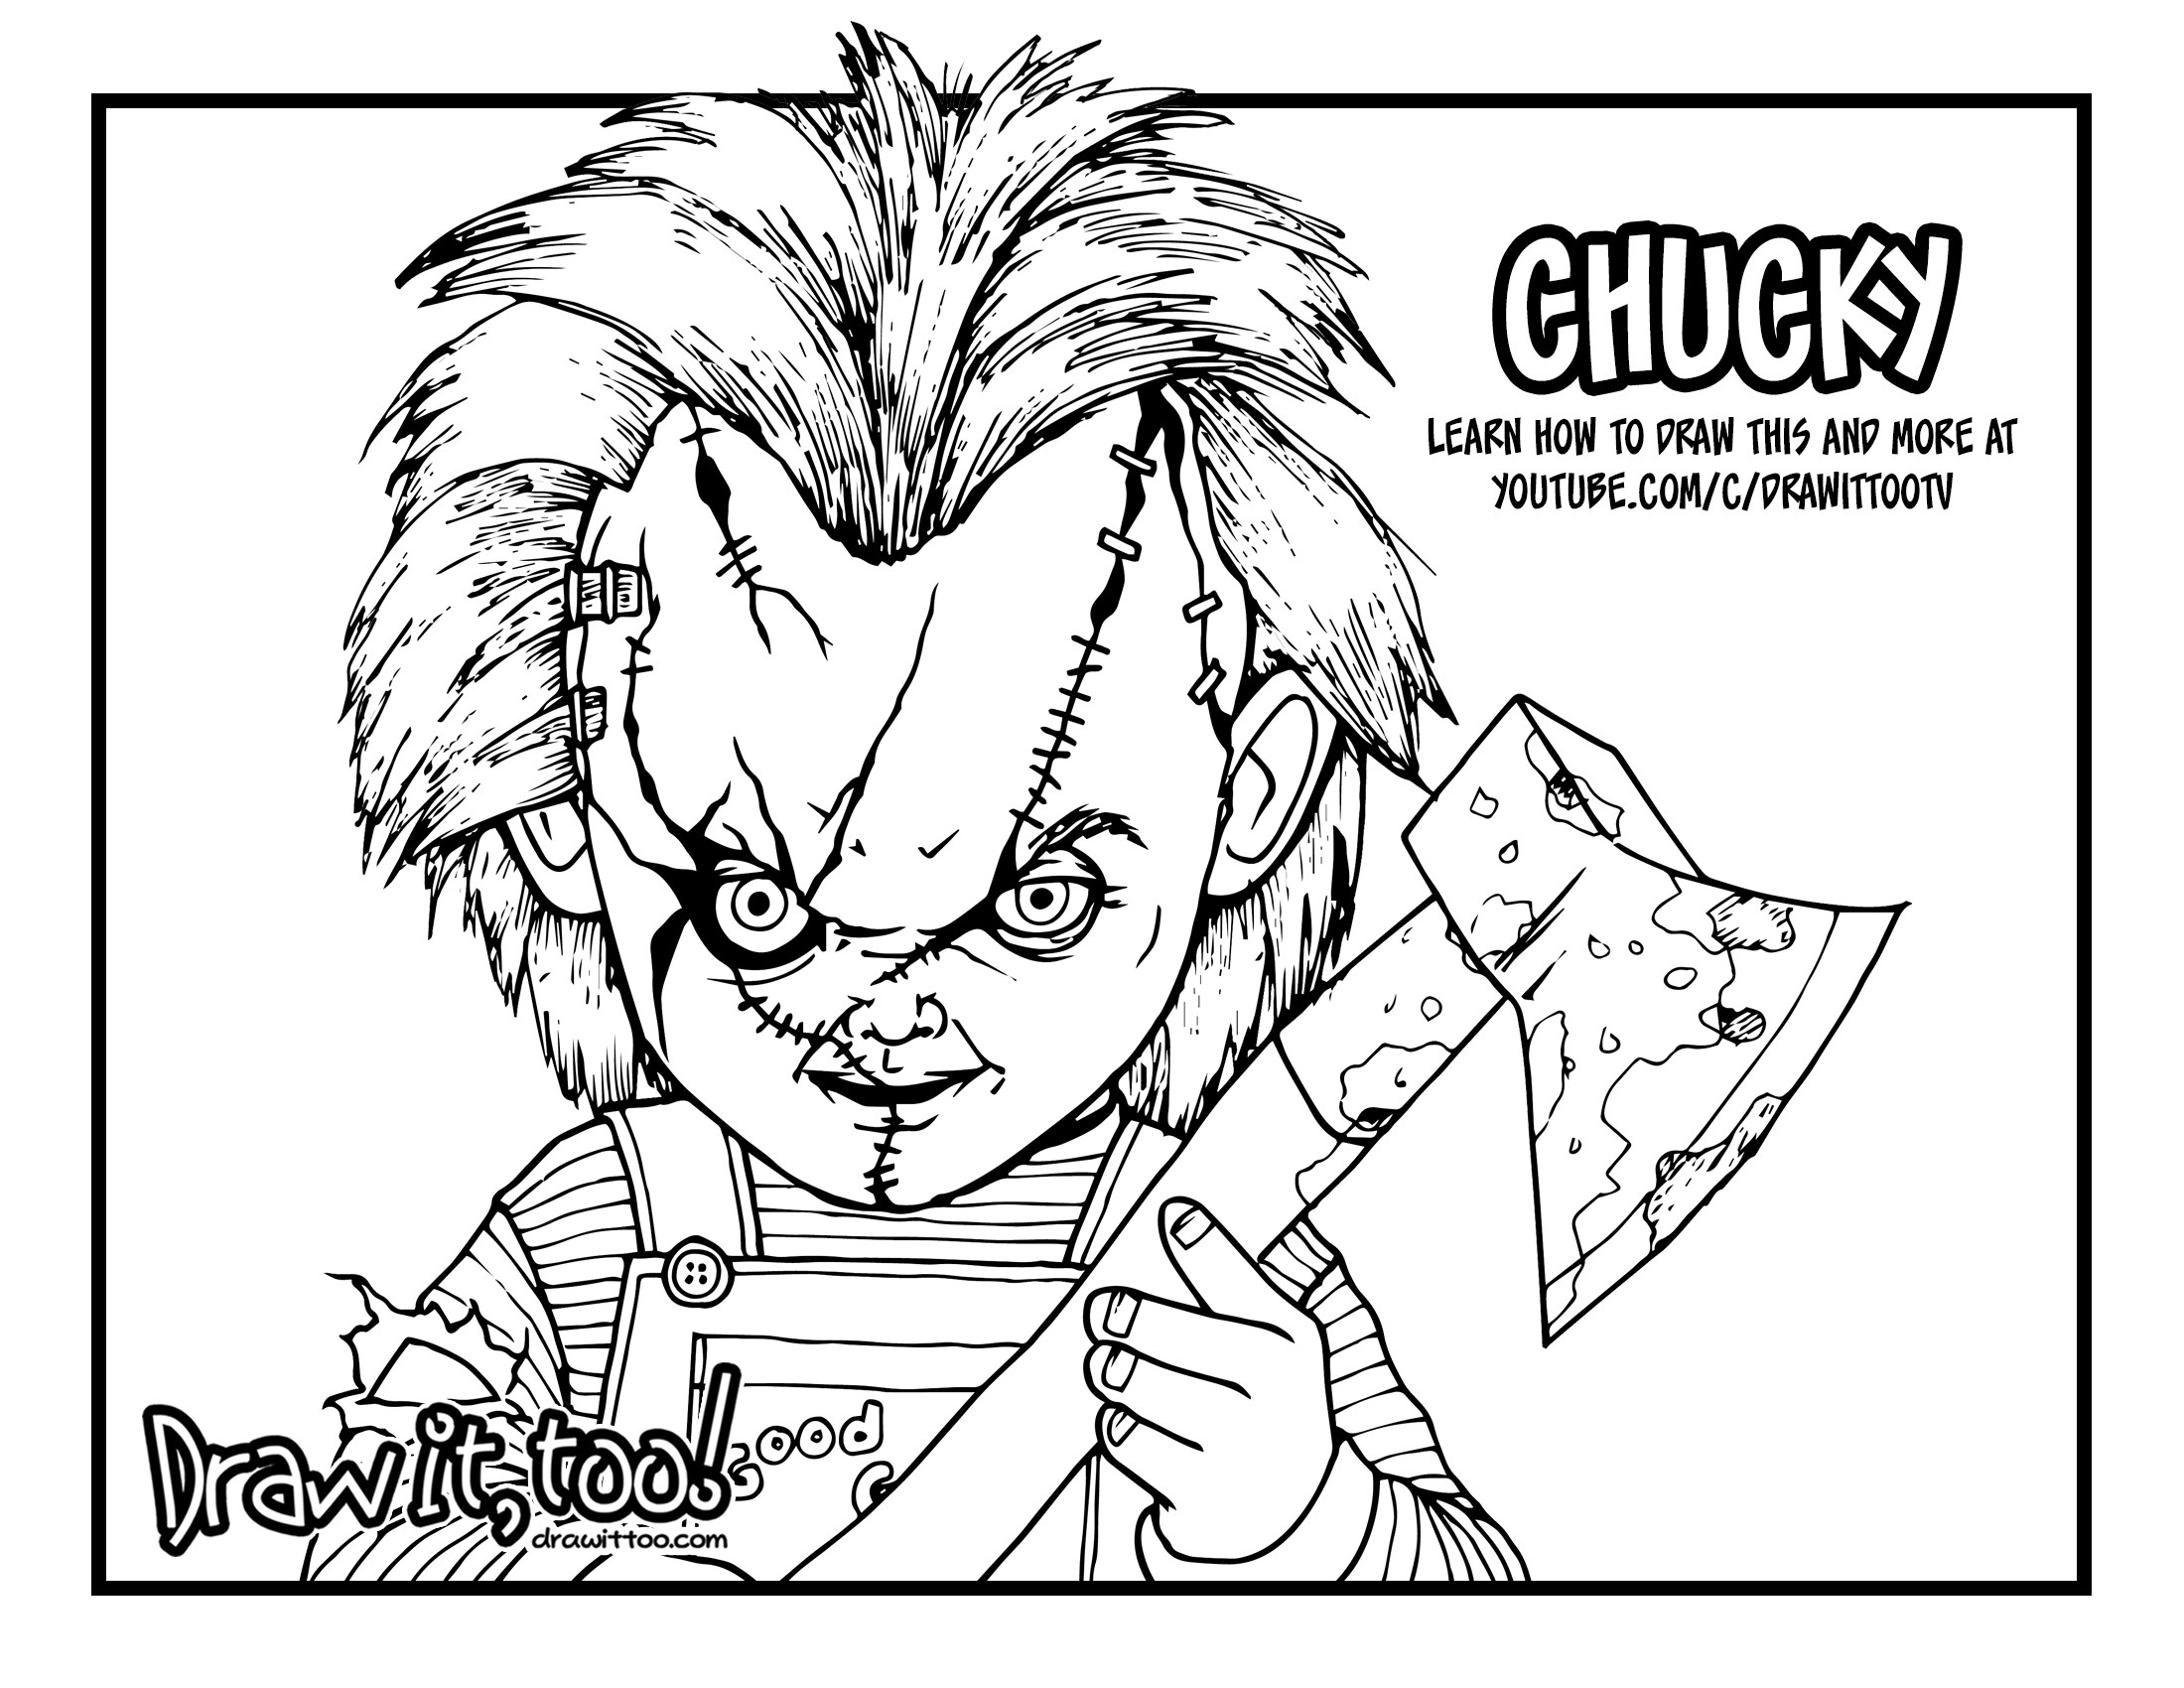 Chucky Clipart Black And White: Childs Face Drawing At GetDrawings.com